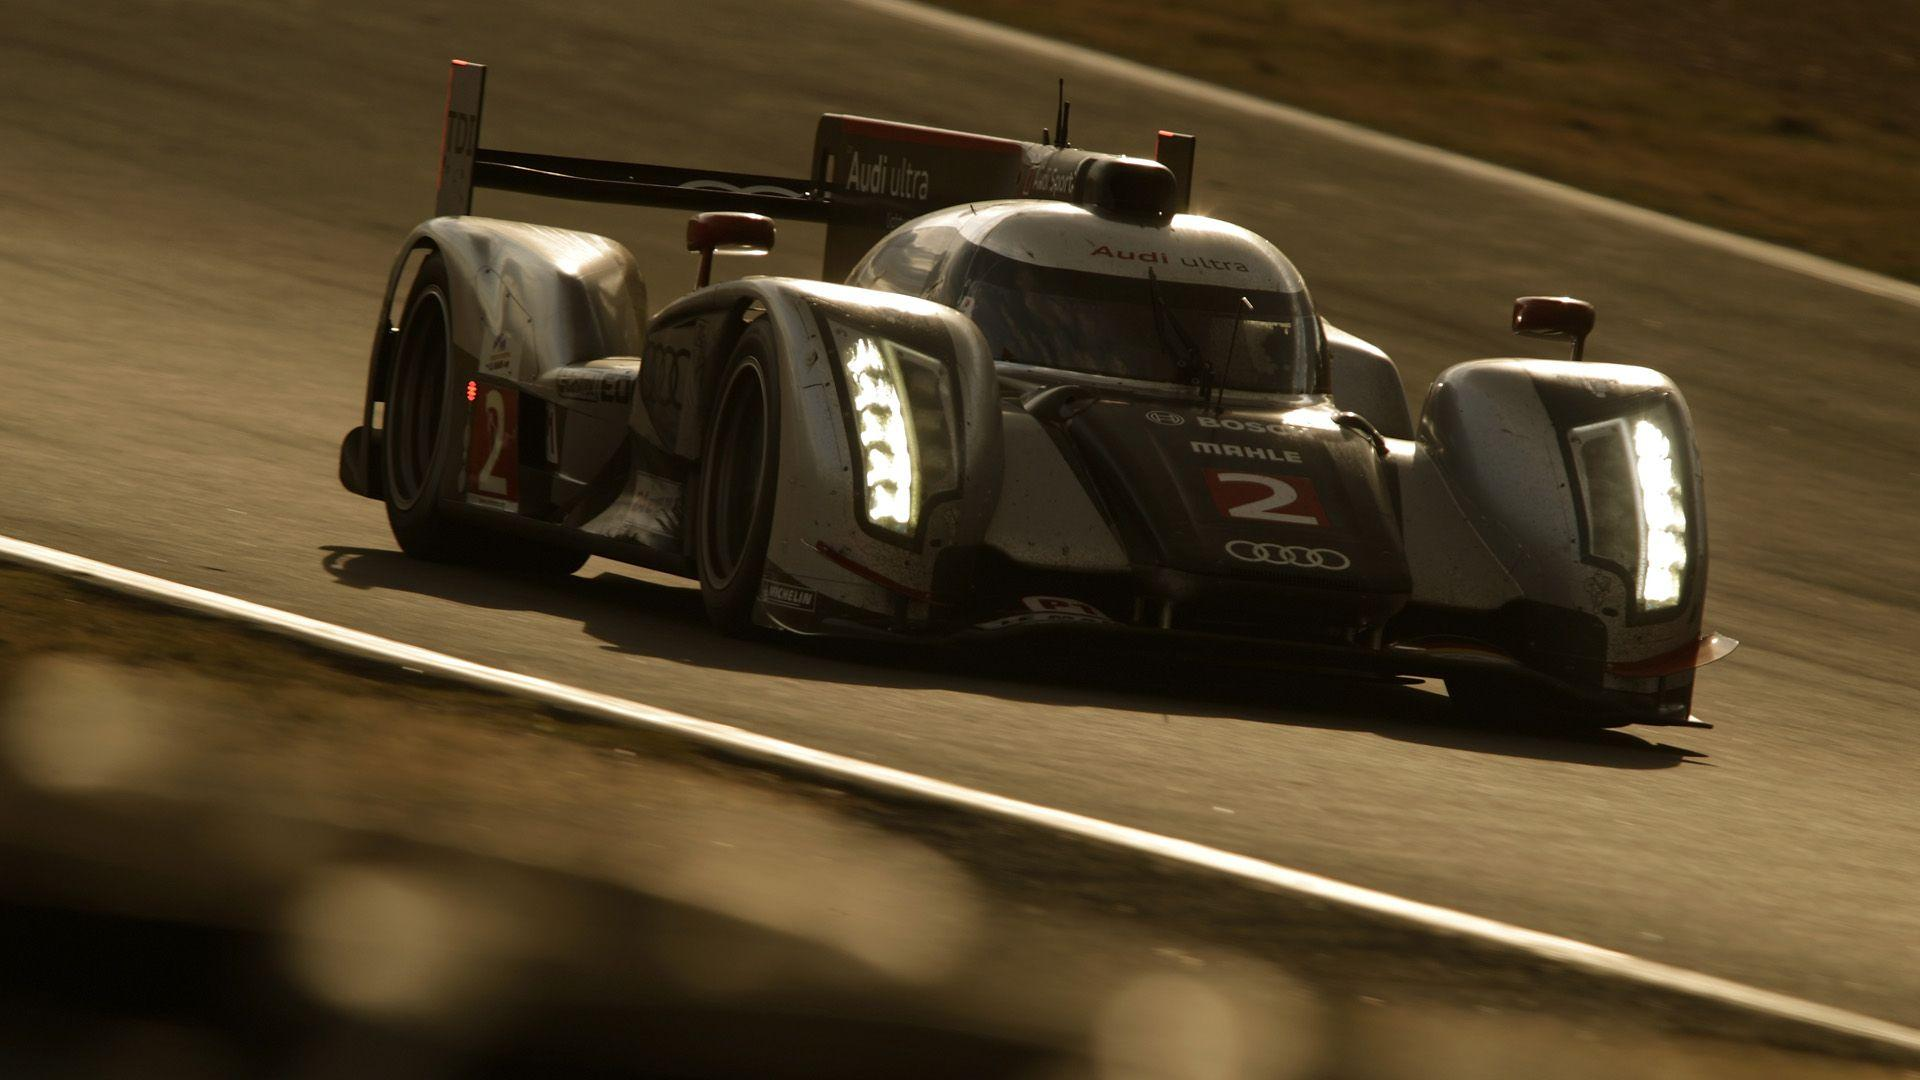 Audi LeMans Wallpapers HD Photos, Wallpapers and other Image